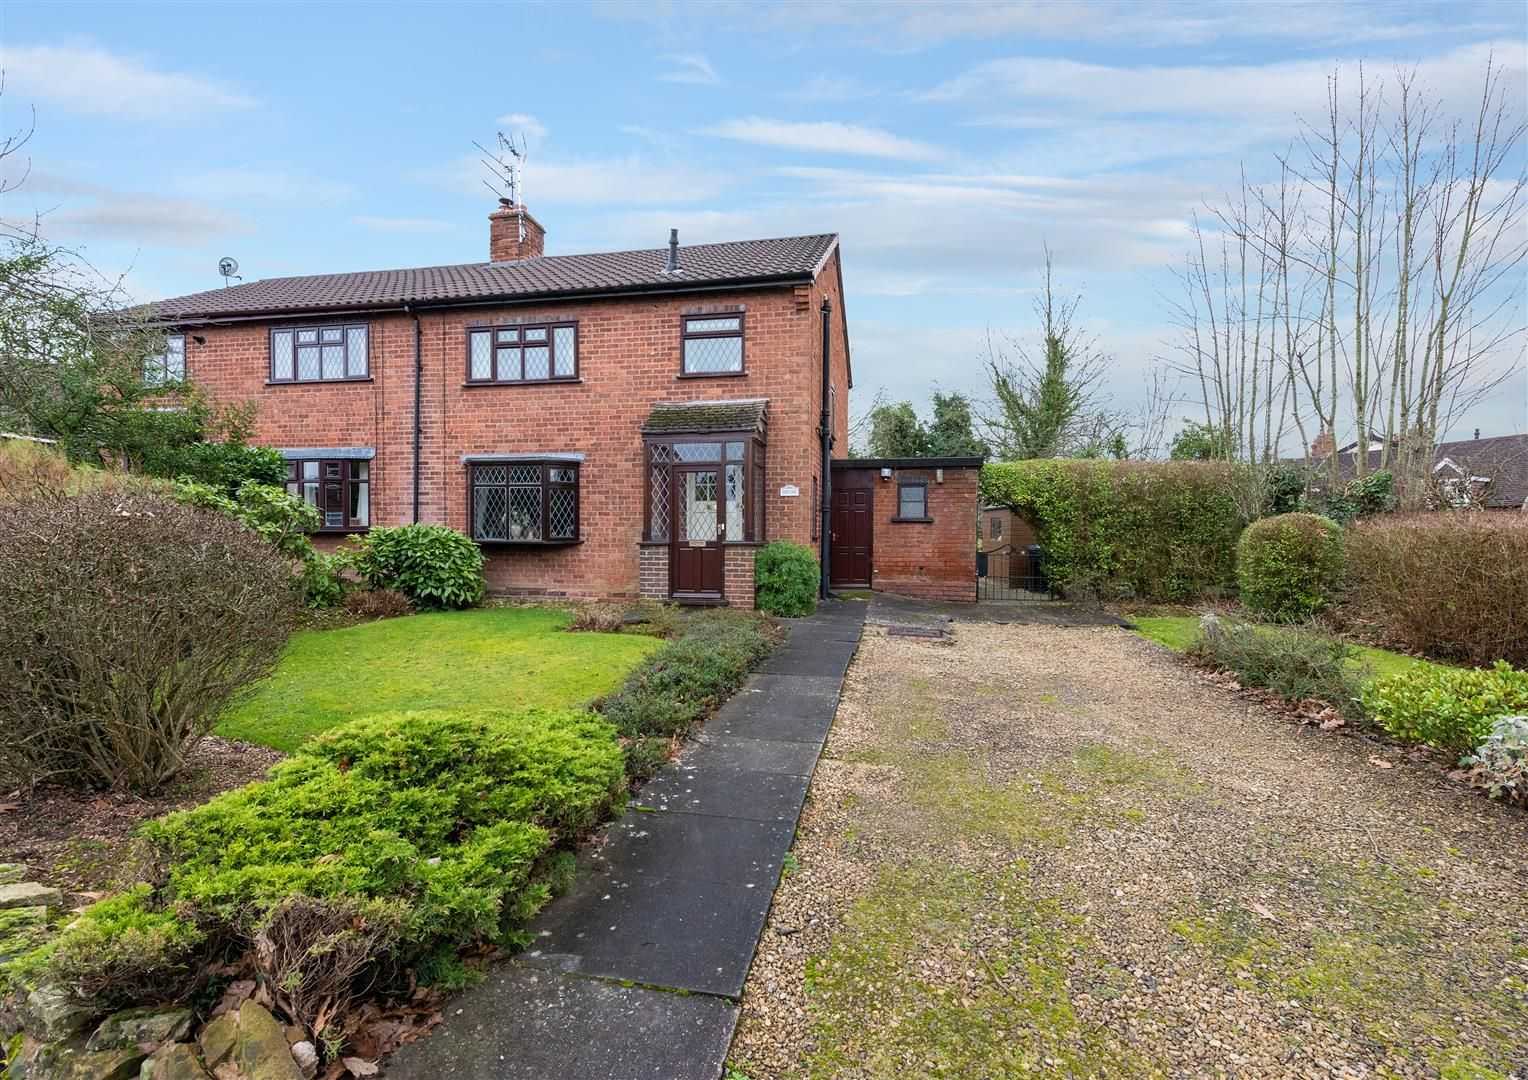 3 bed house for sale in Belbroughton - Property Image 1